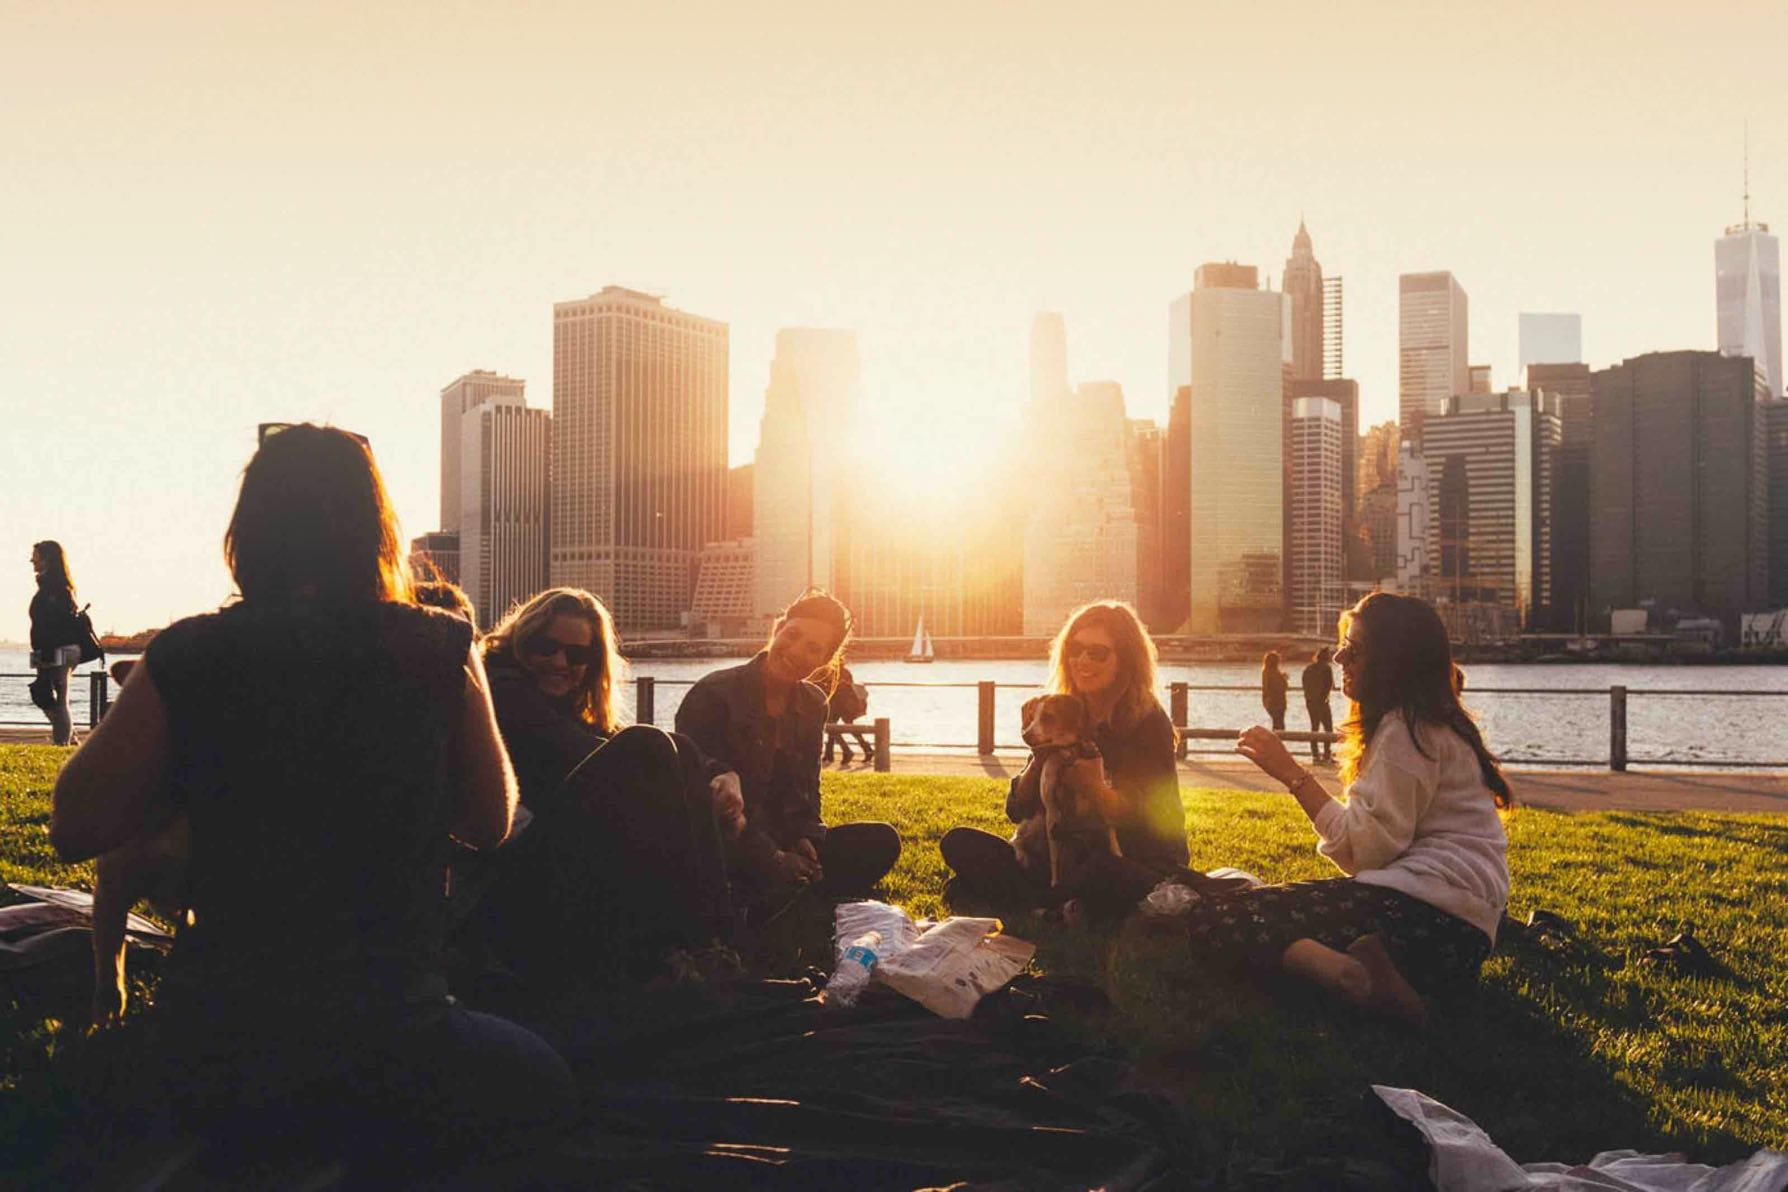 Group of neighbors from a high-rise community having a picnic at a riverfront park in the city